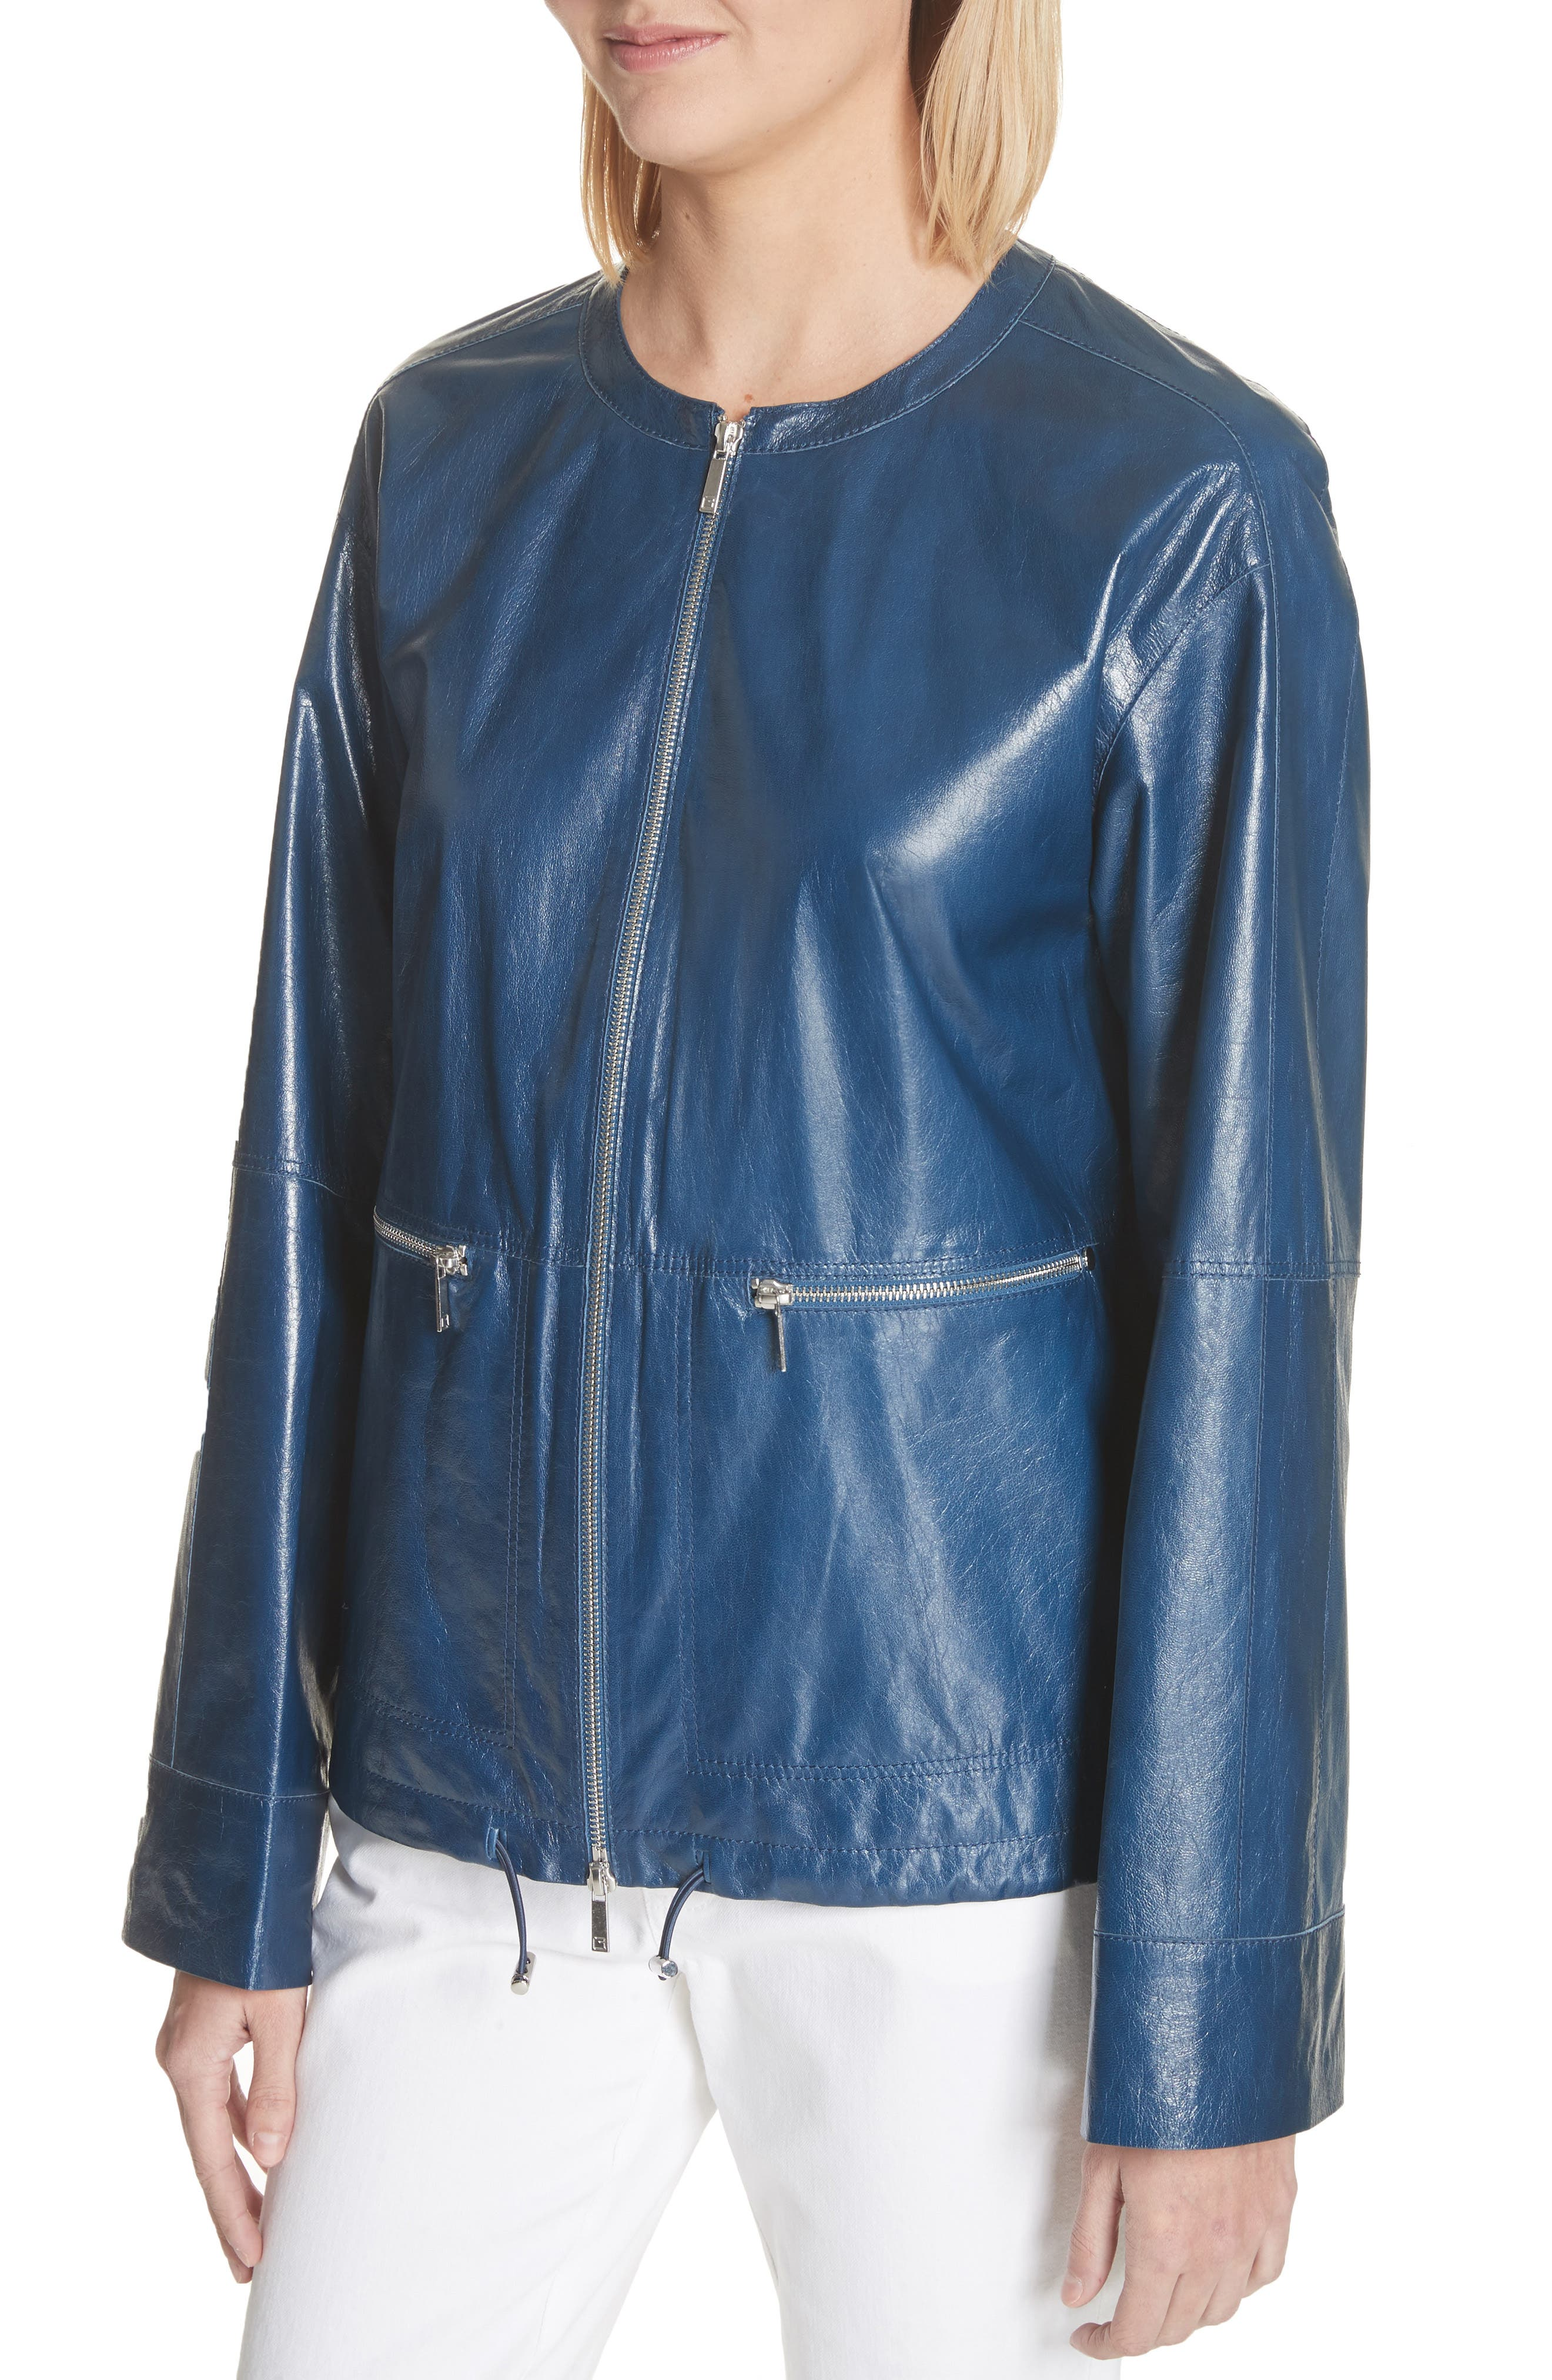 Fleming Leather Jacket,                             Alternate thumbnail 4, color,                             Majolica Blue